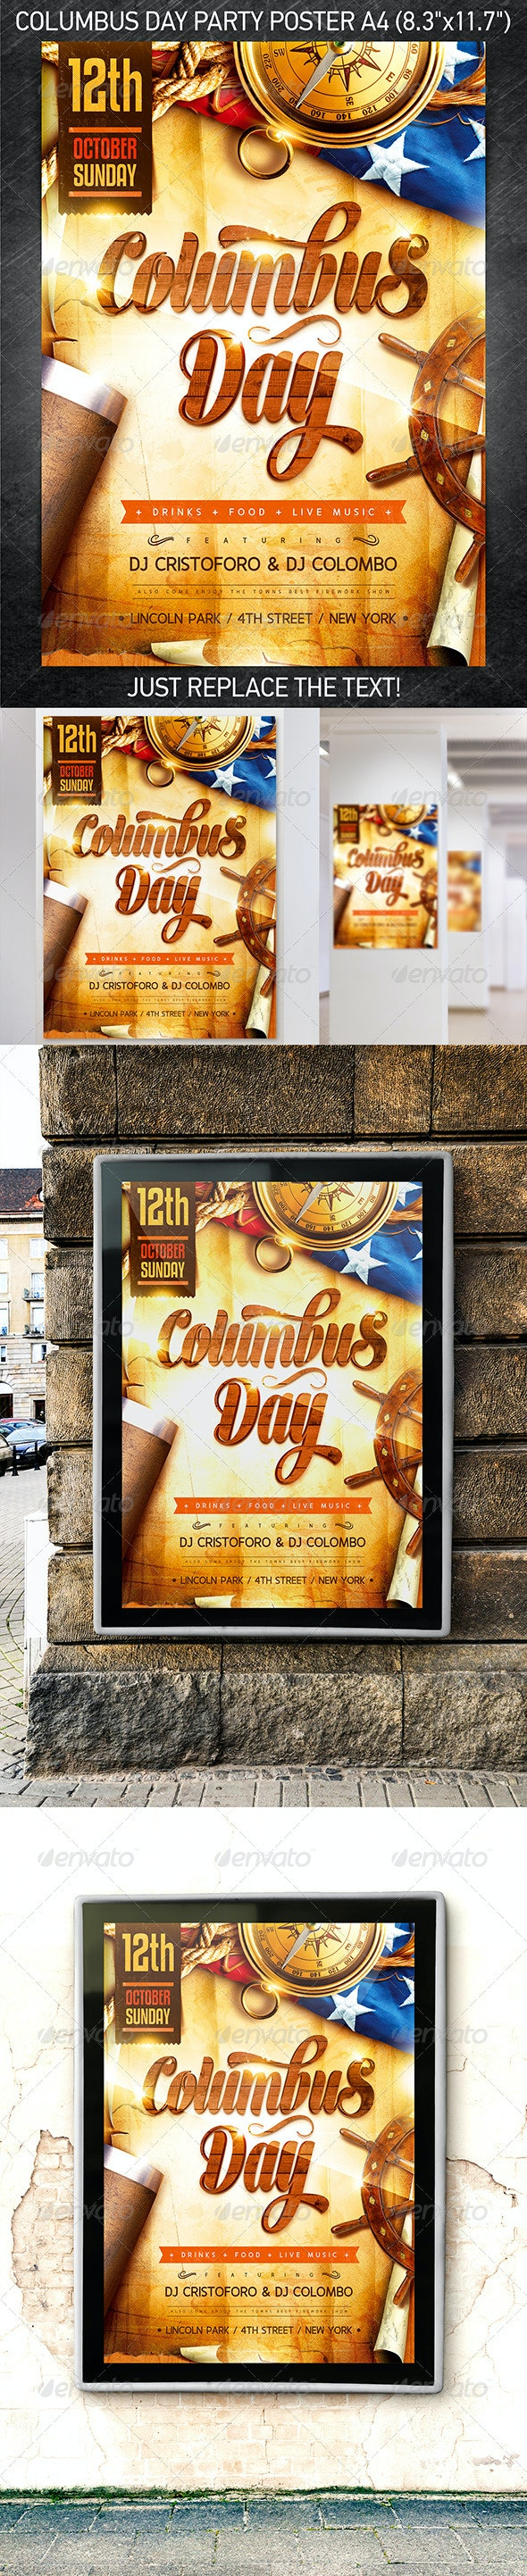 Columbus Day Party Poster - Events Flyers